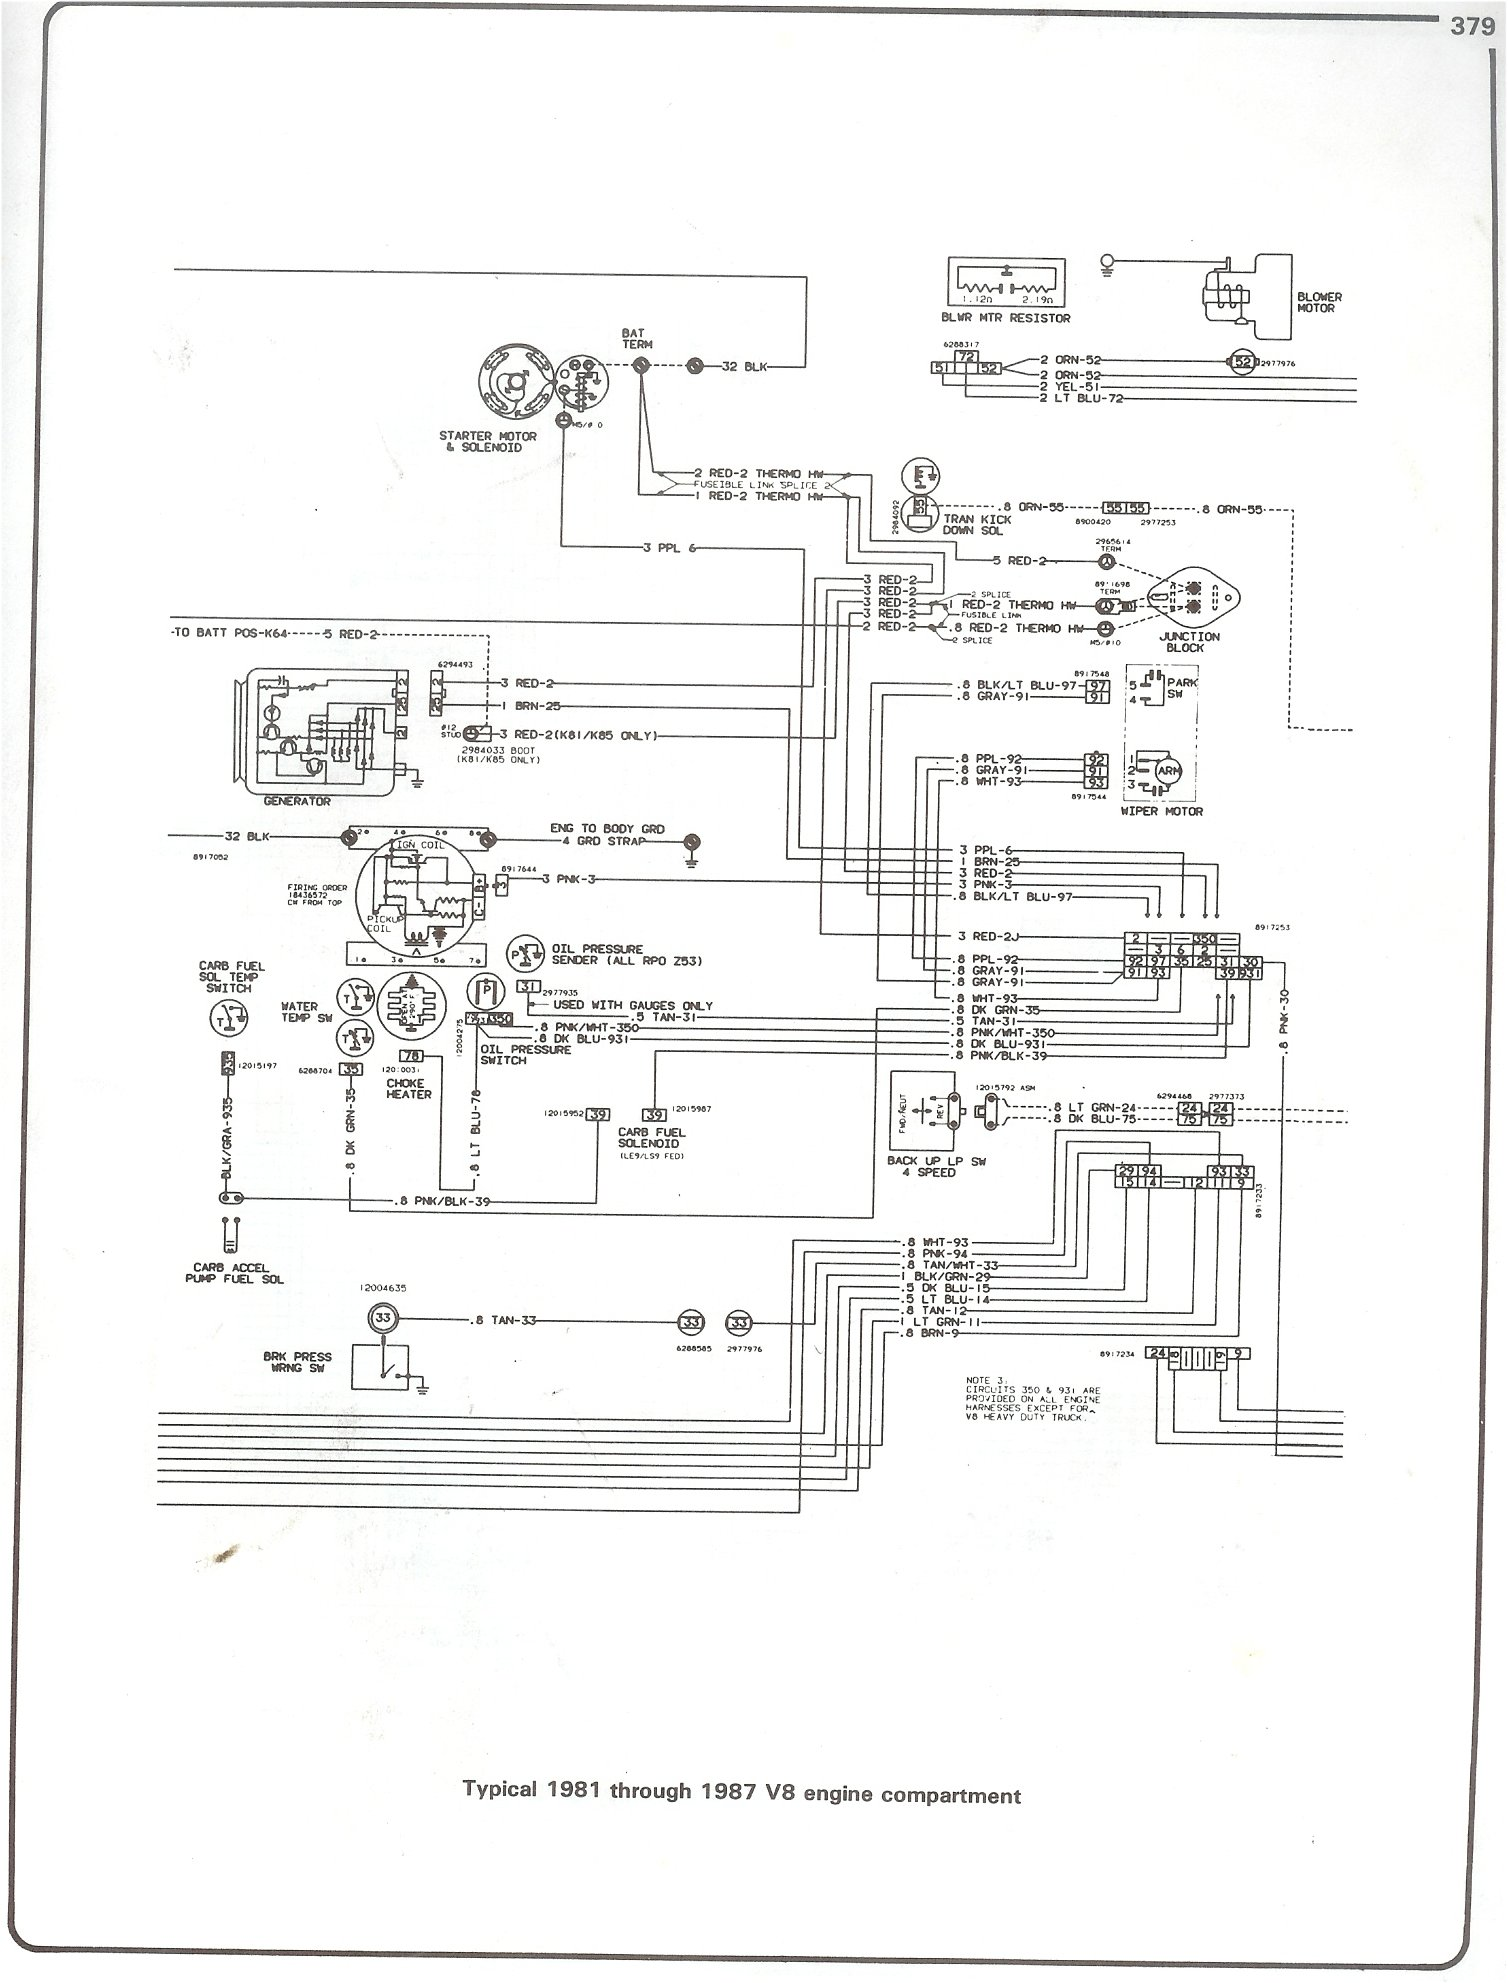 81 87_V8_engine 1983 chevy truck wiring diagram 1981 chevy truck wiring diagram chevy 350 wiring diagram at readyjetset.co